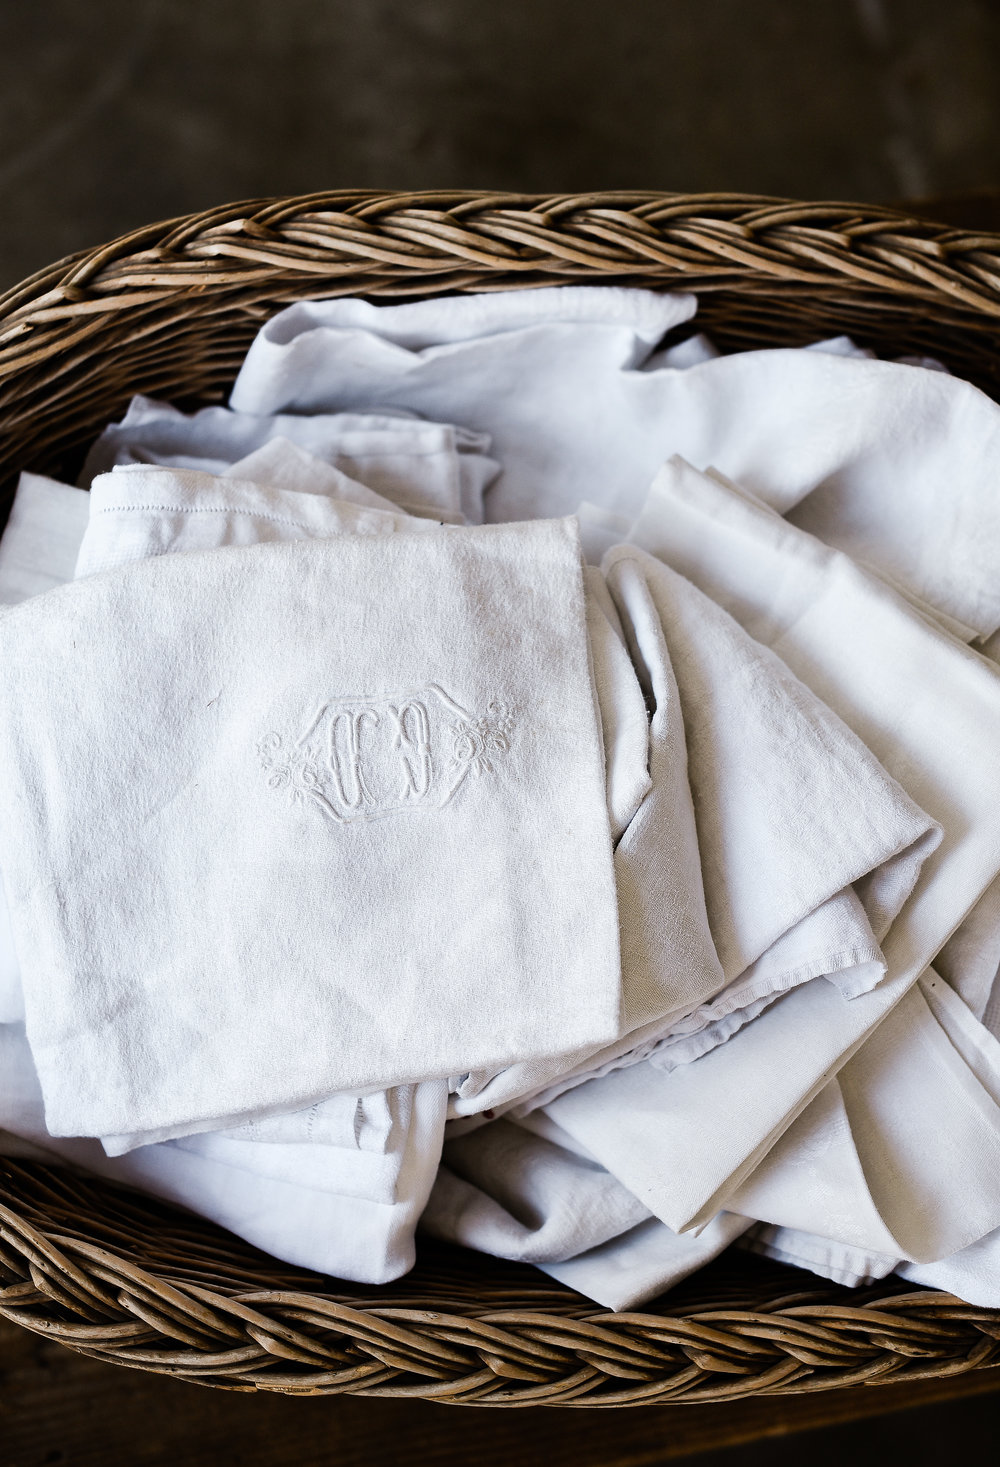 Monogramed linen French vintage napkins